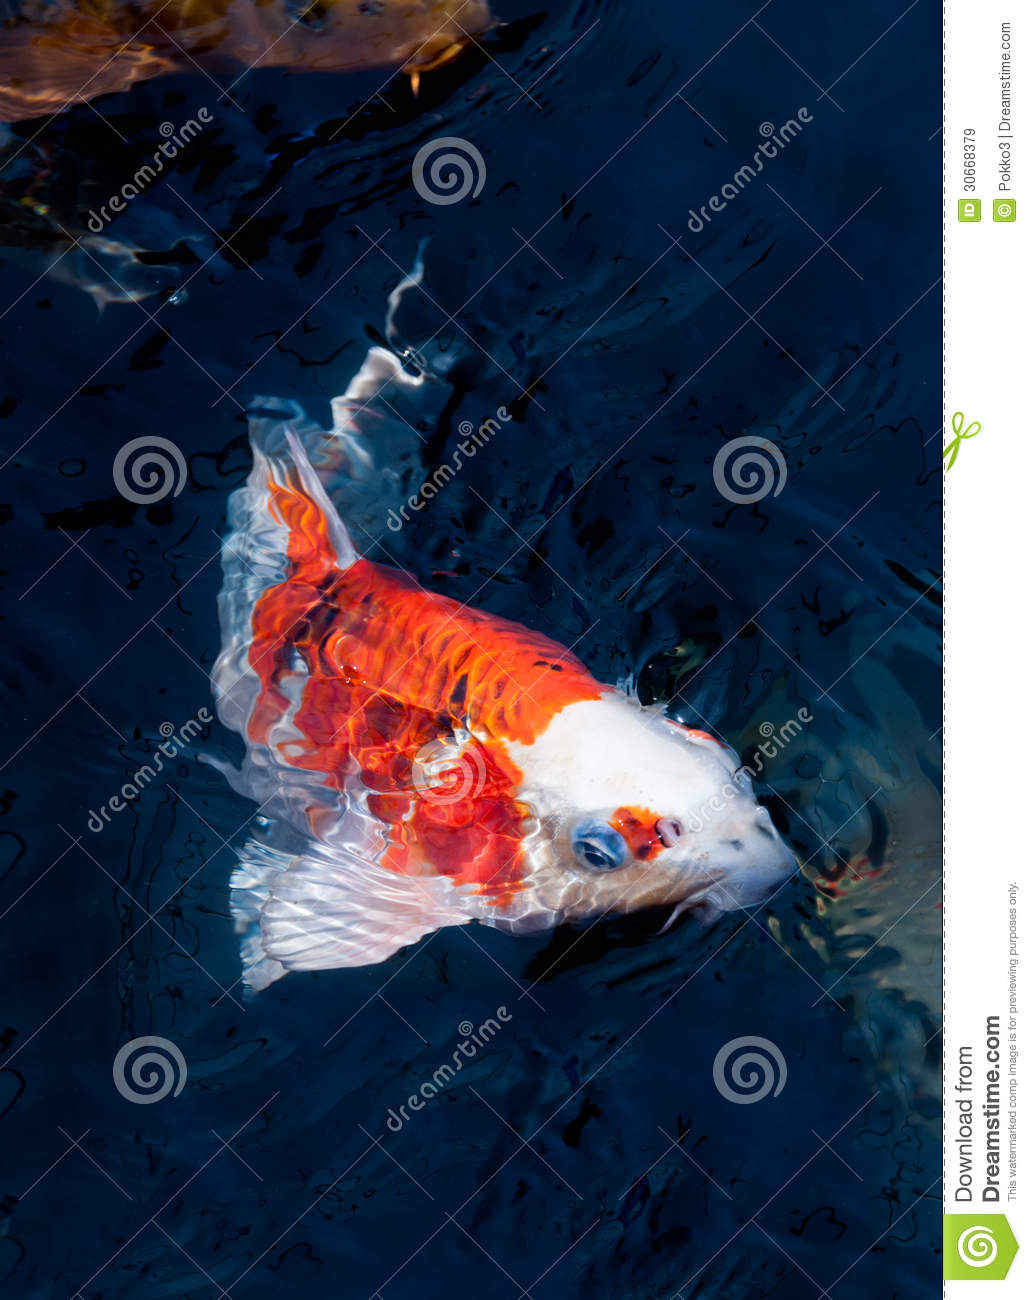 Beautiful koi fish royalty free stock images image 30668379 for Dream of fish swimming